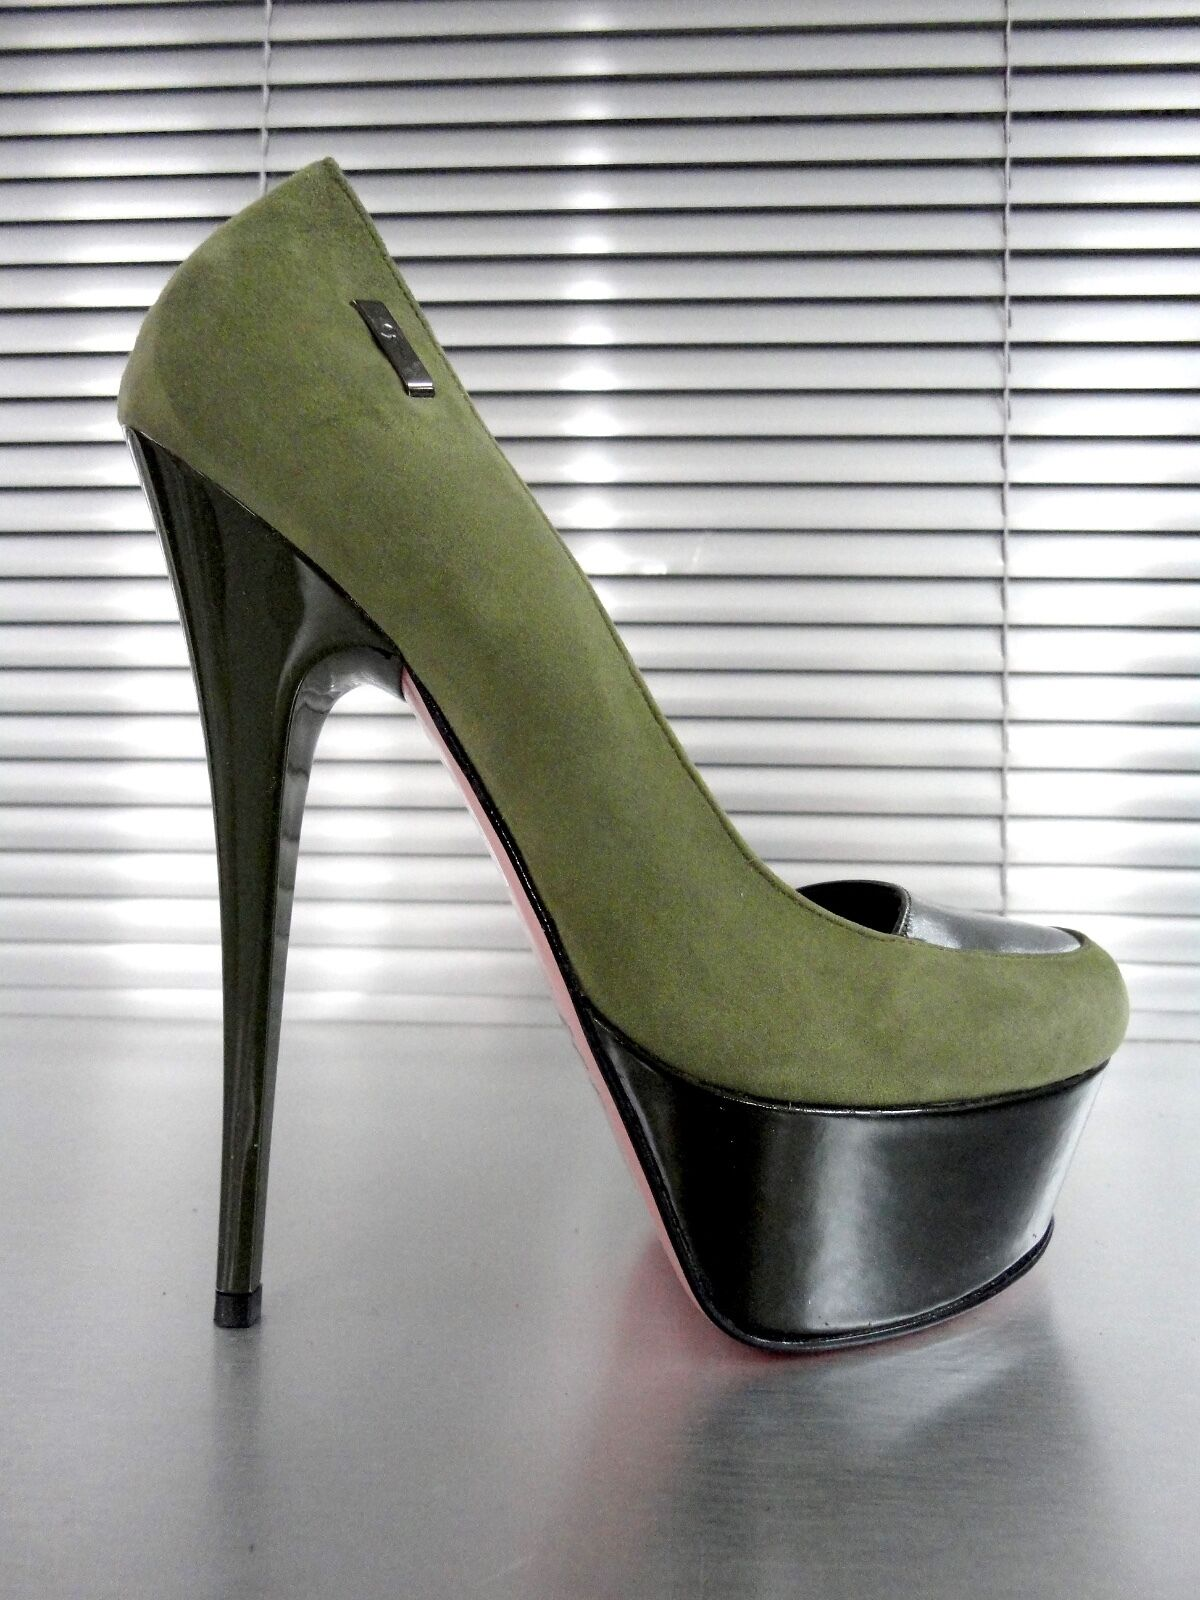 Descuento barato MORI ITALY PLATFORM HEELS PUMPS SCHUHE SHOES KROCO LEATHER LIGHT VERDE GREEN 42